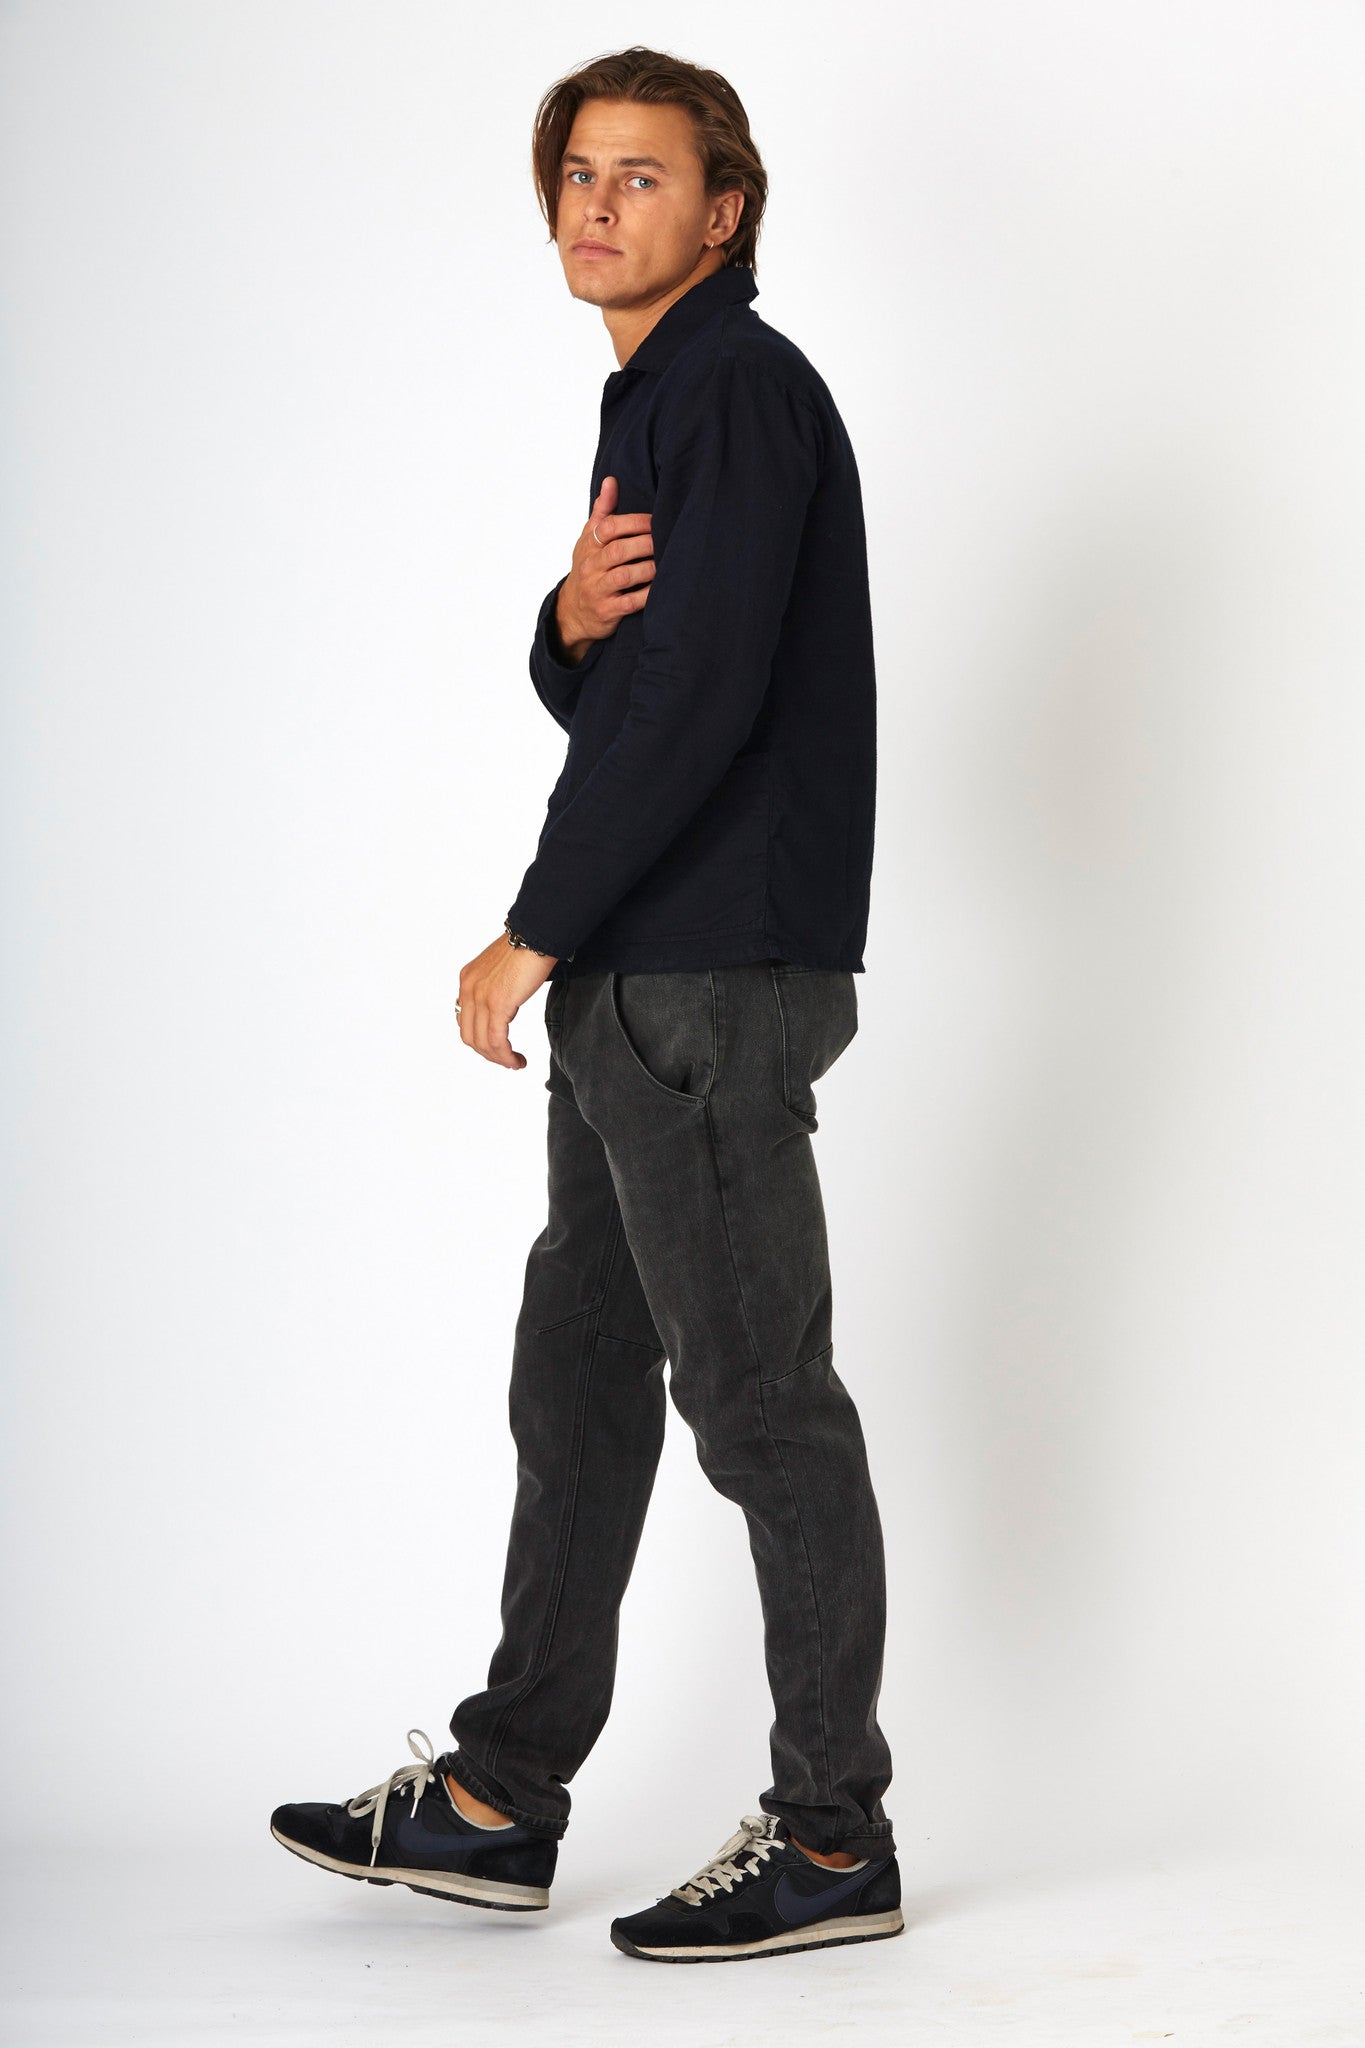 #2A12 Relaxed Rigid Kinetic Black - denimcolab